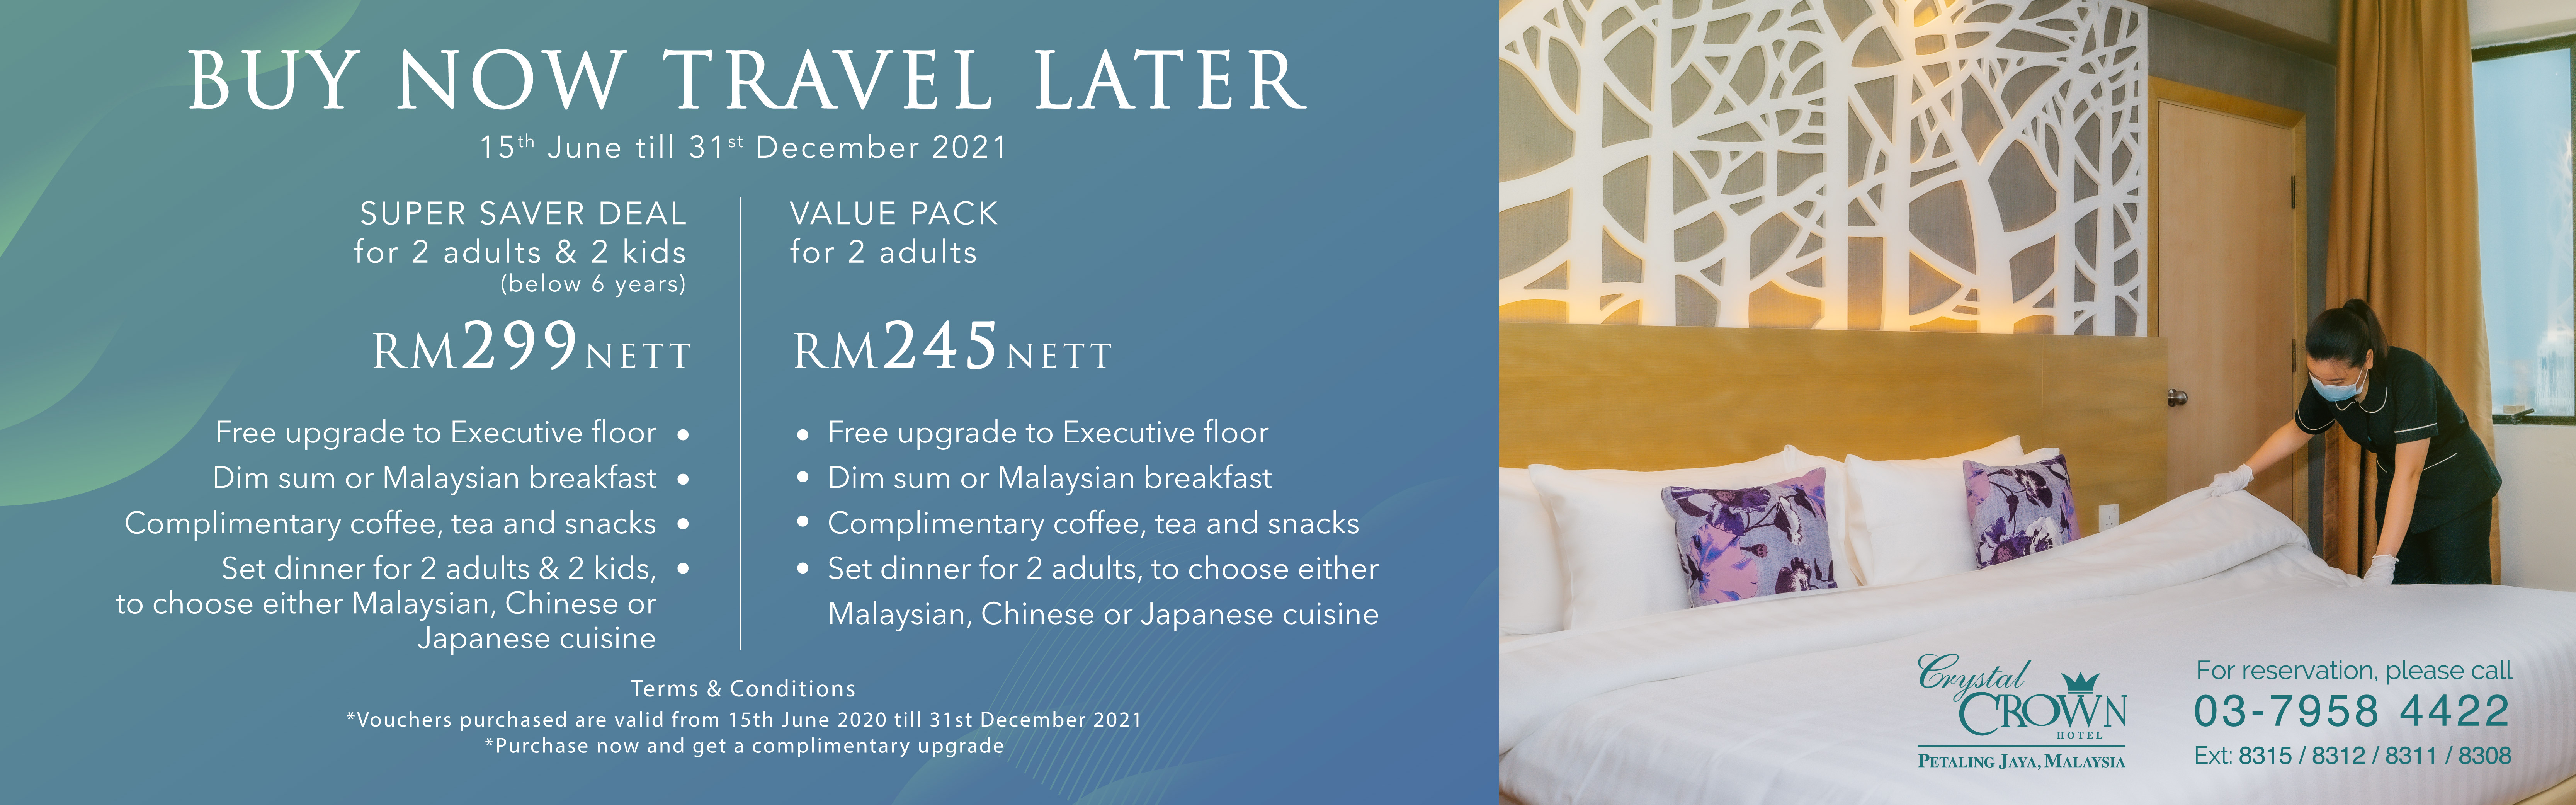 BuyNowTravelLater2020RoomPromo_cchpj_WebHeader